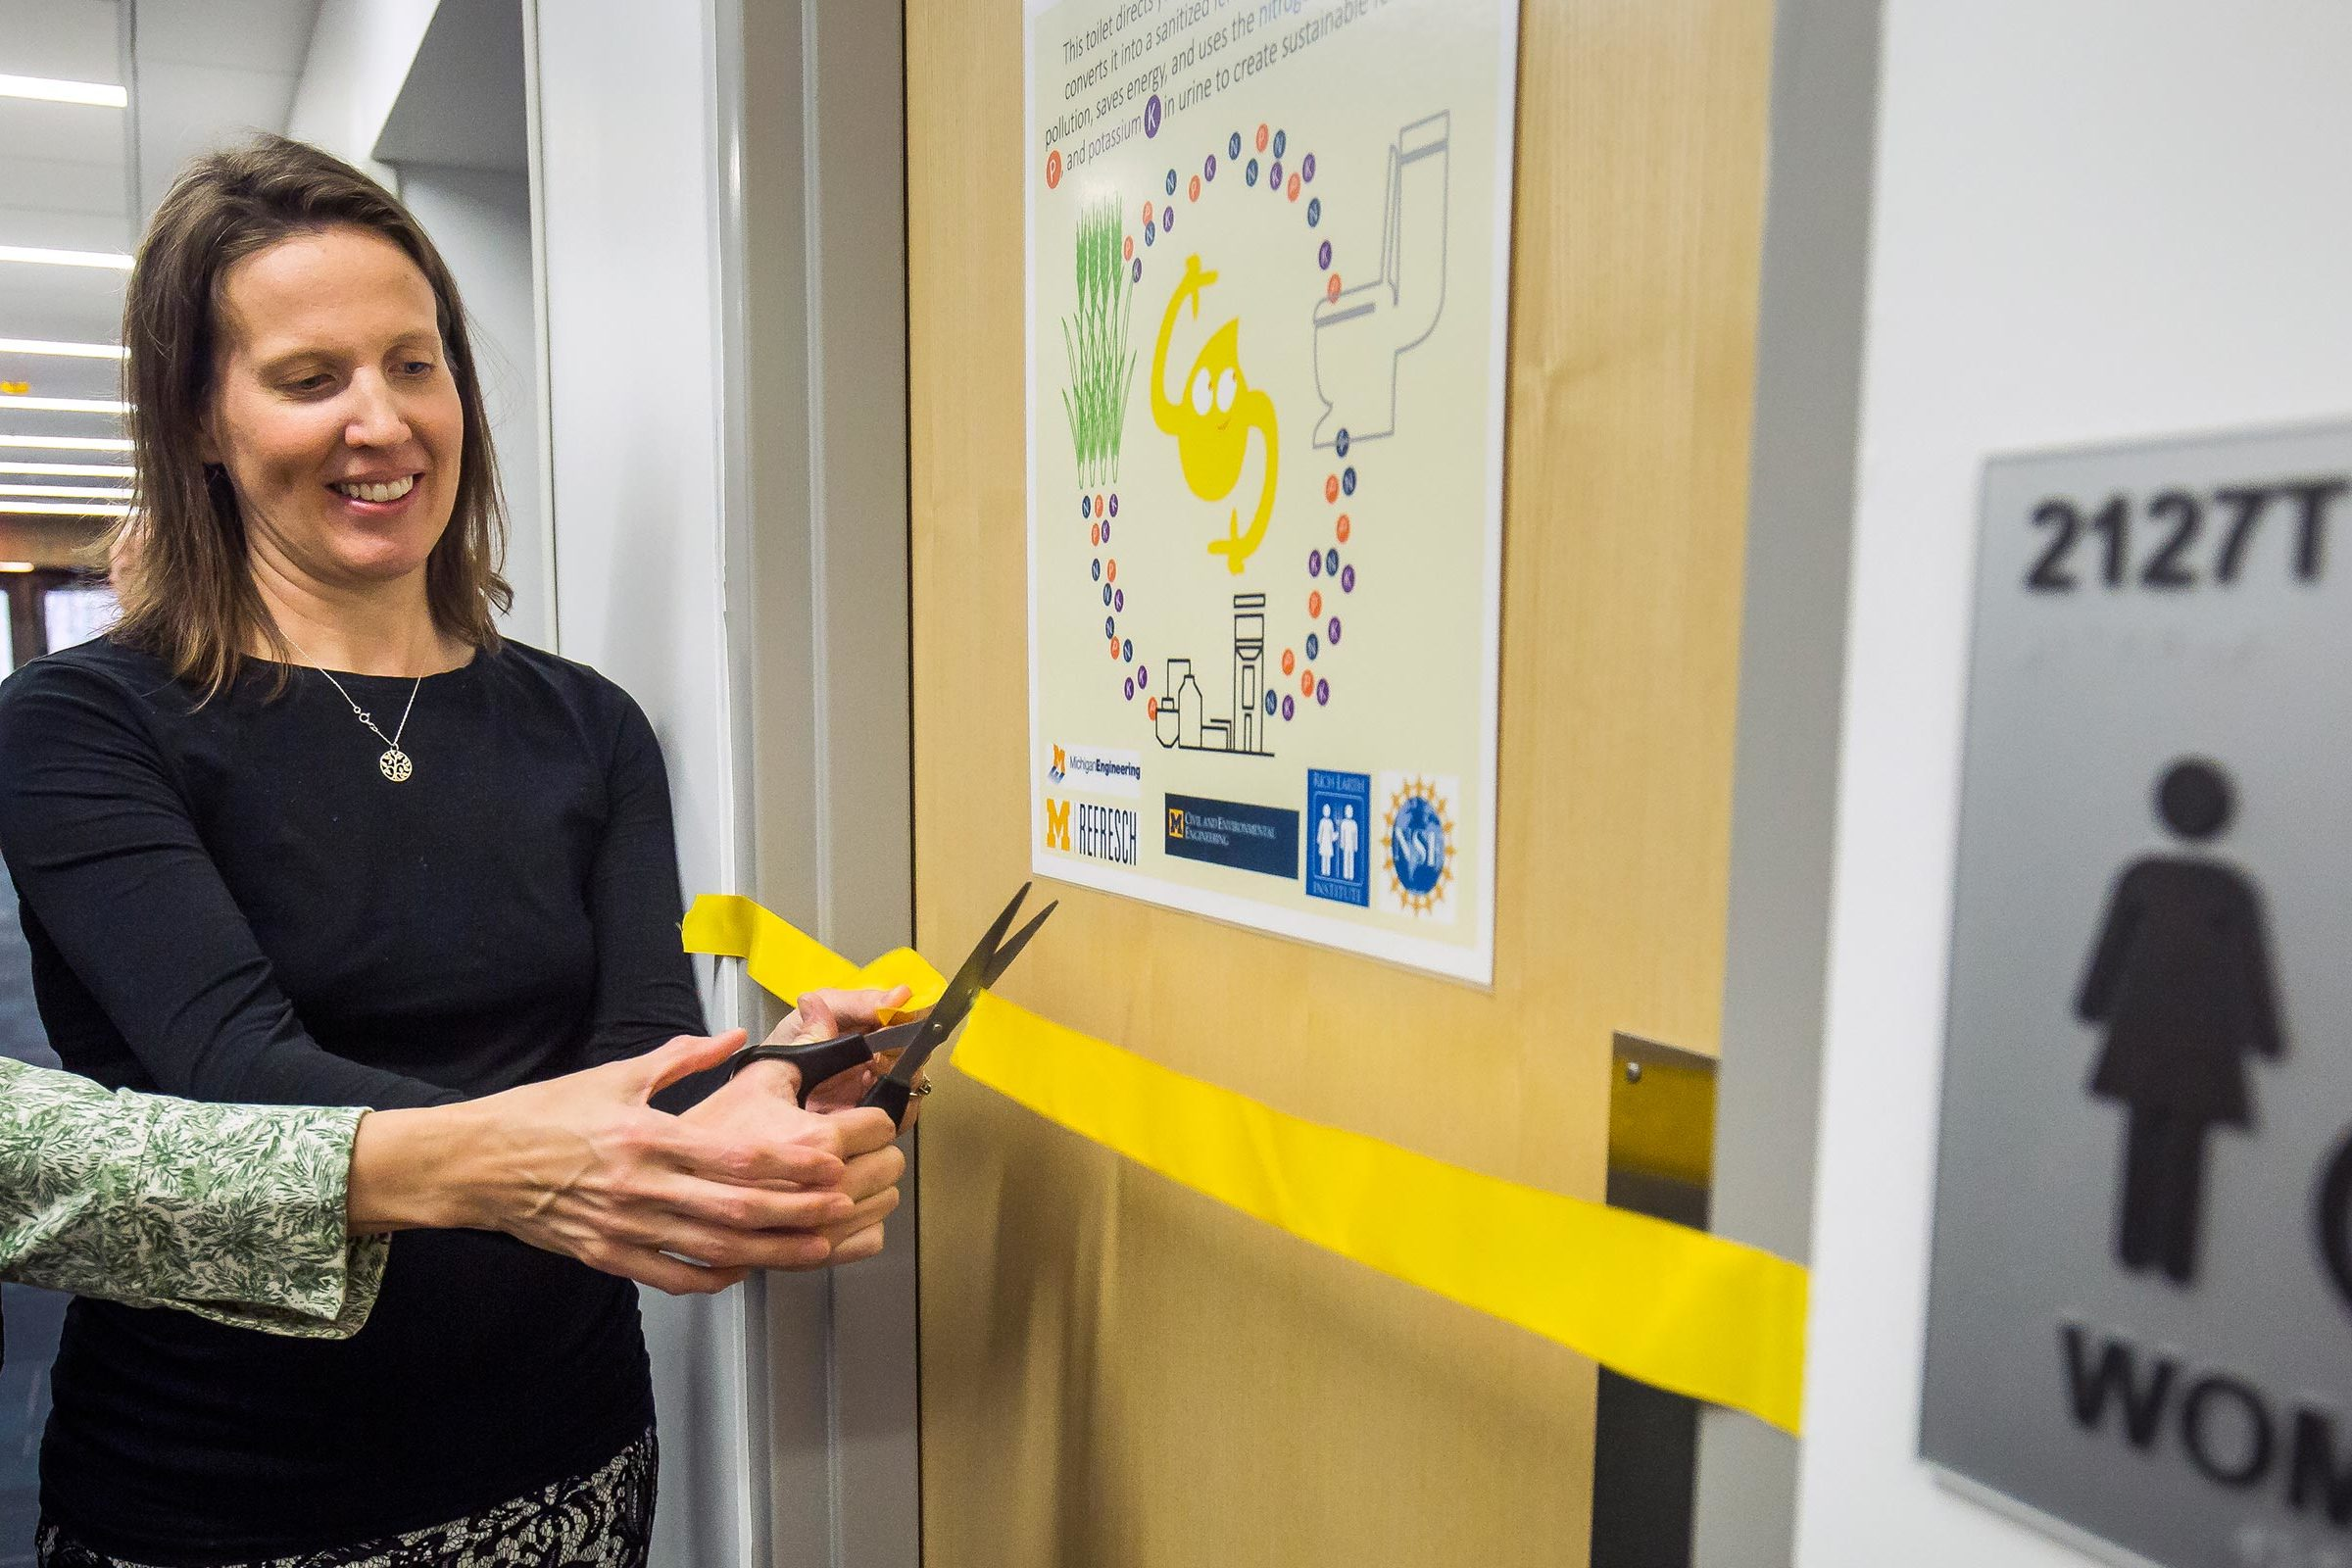 Two professors cut the ribbon to officially open the new restroom